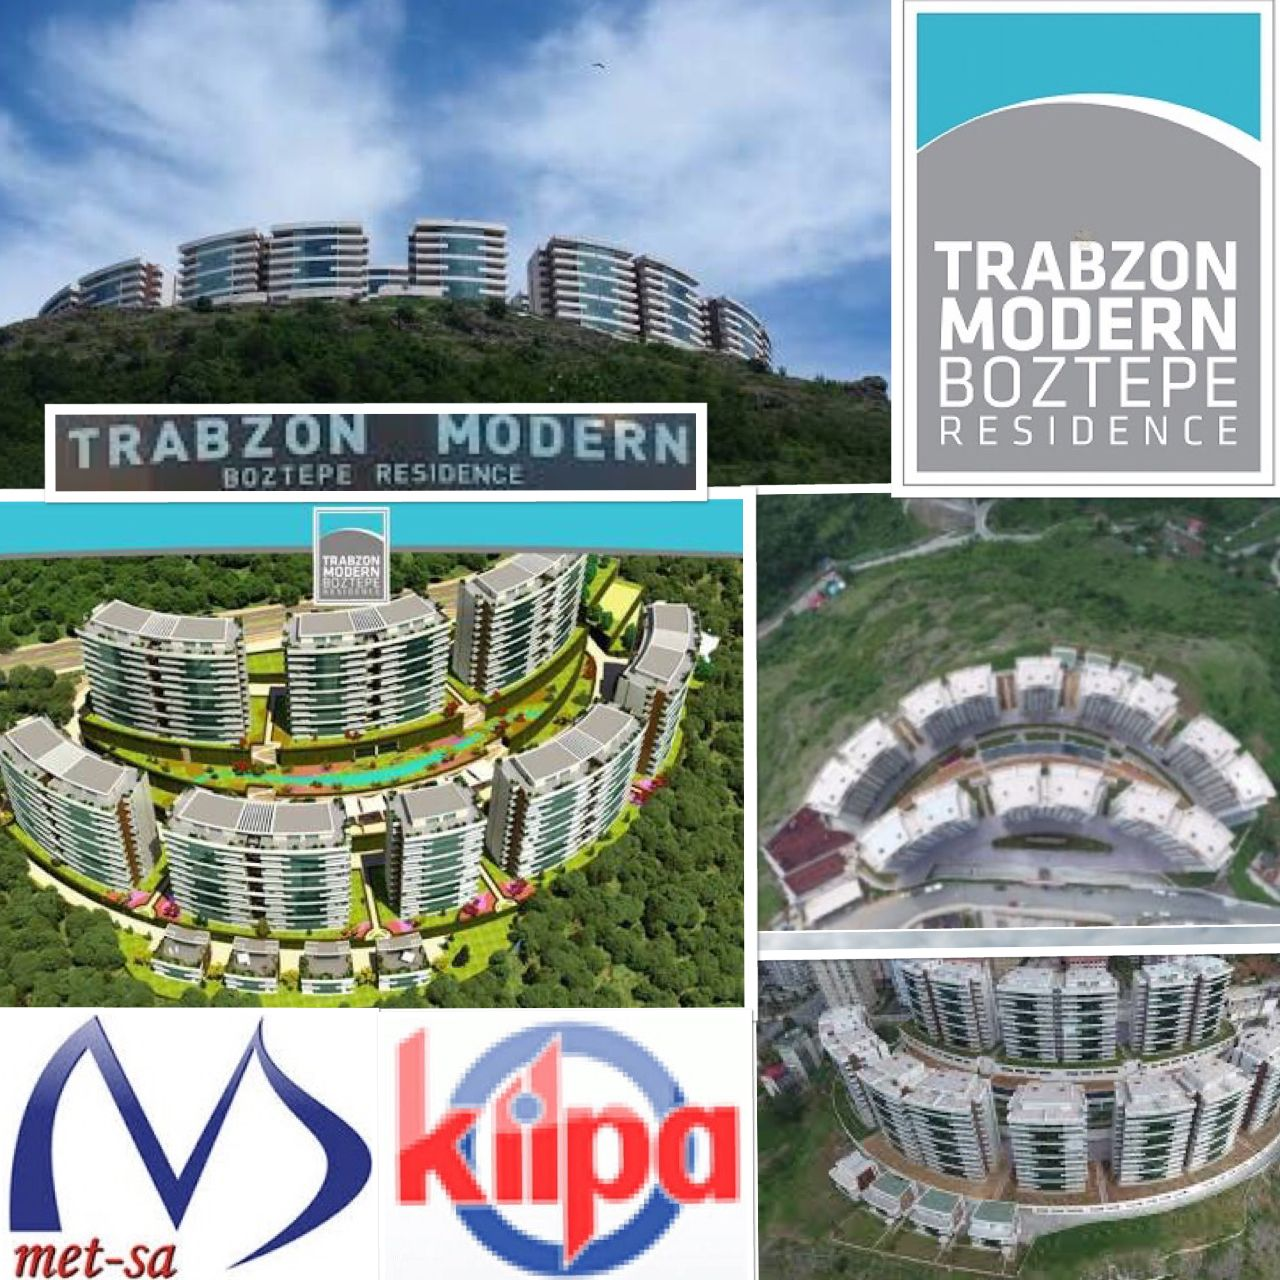 Invest in Turkey Real Estate market with our professional guidance. For more than 100+ properties, visit our website www.cctinvestments.com ✅ #istanbulproperty #istanbulrealestate #boztepetrabzon #trabzonmodern #metsainşaat #kilpainşaat #trabzonmodernbozteperesidence